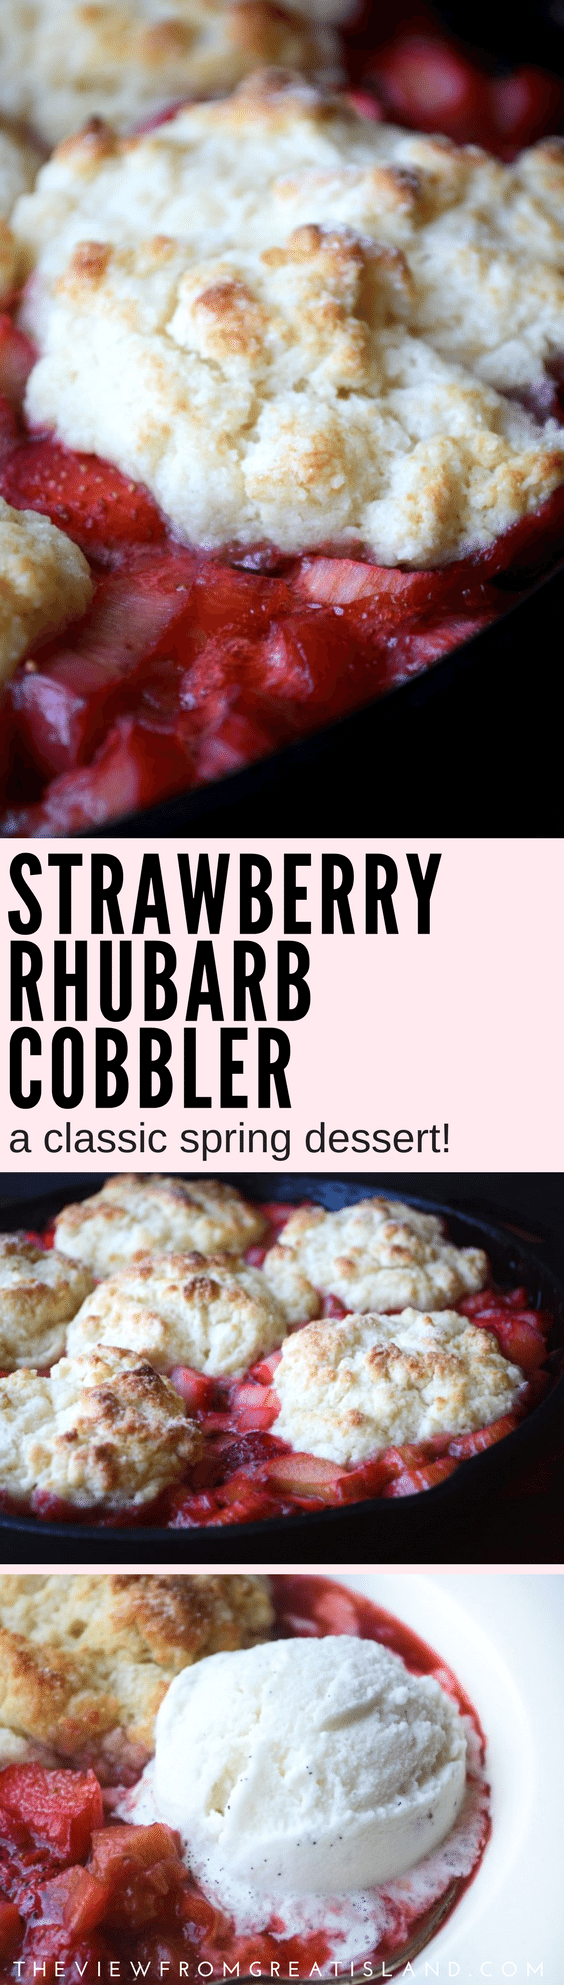 Strawberry Rhubarb Cobbler ~ it's one of the joys of the season, with juicy ruby red strawberries and rhubarb bubbling up around a flaky biscuit dough, what are you waiting for? #springdessert #strawberryandrhubarb #rhubarb #spring #dessert #strawberries #cobbler #biscuit #classicdessert #dessertrecipe #springrecipe